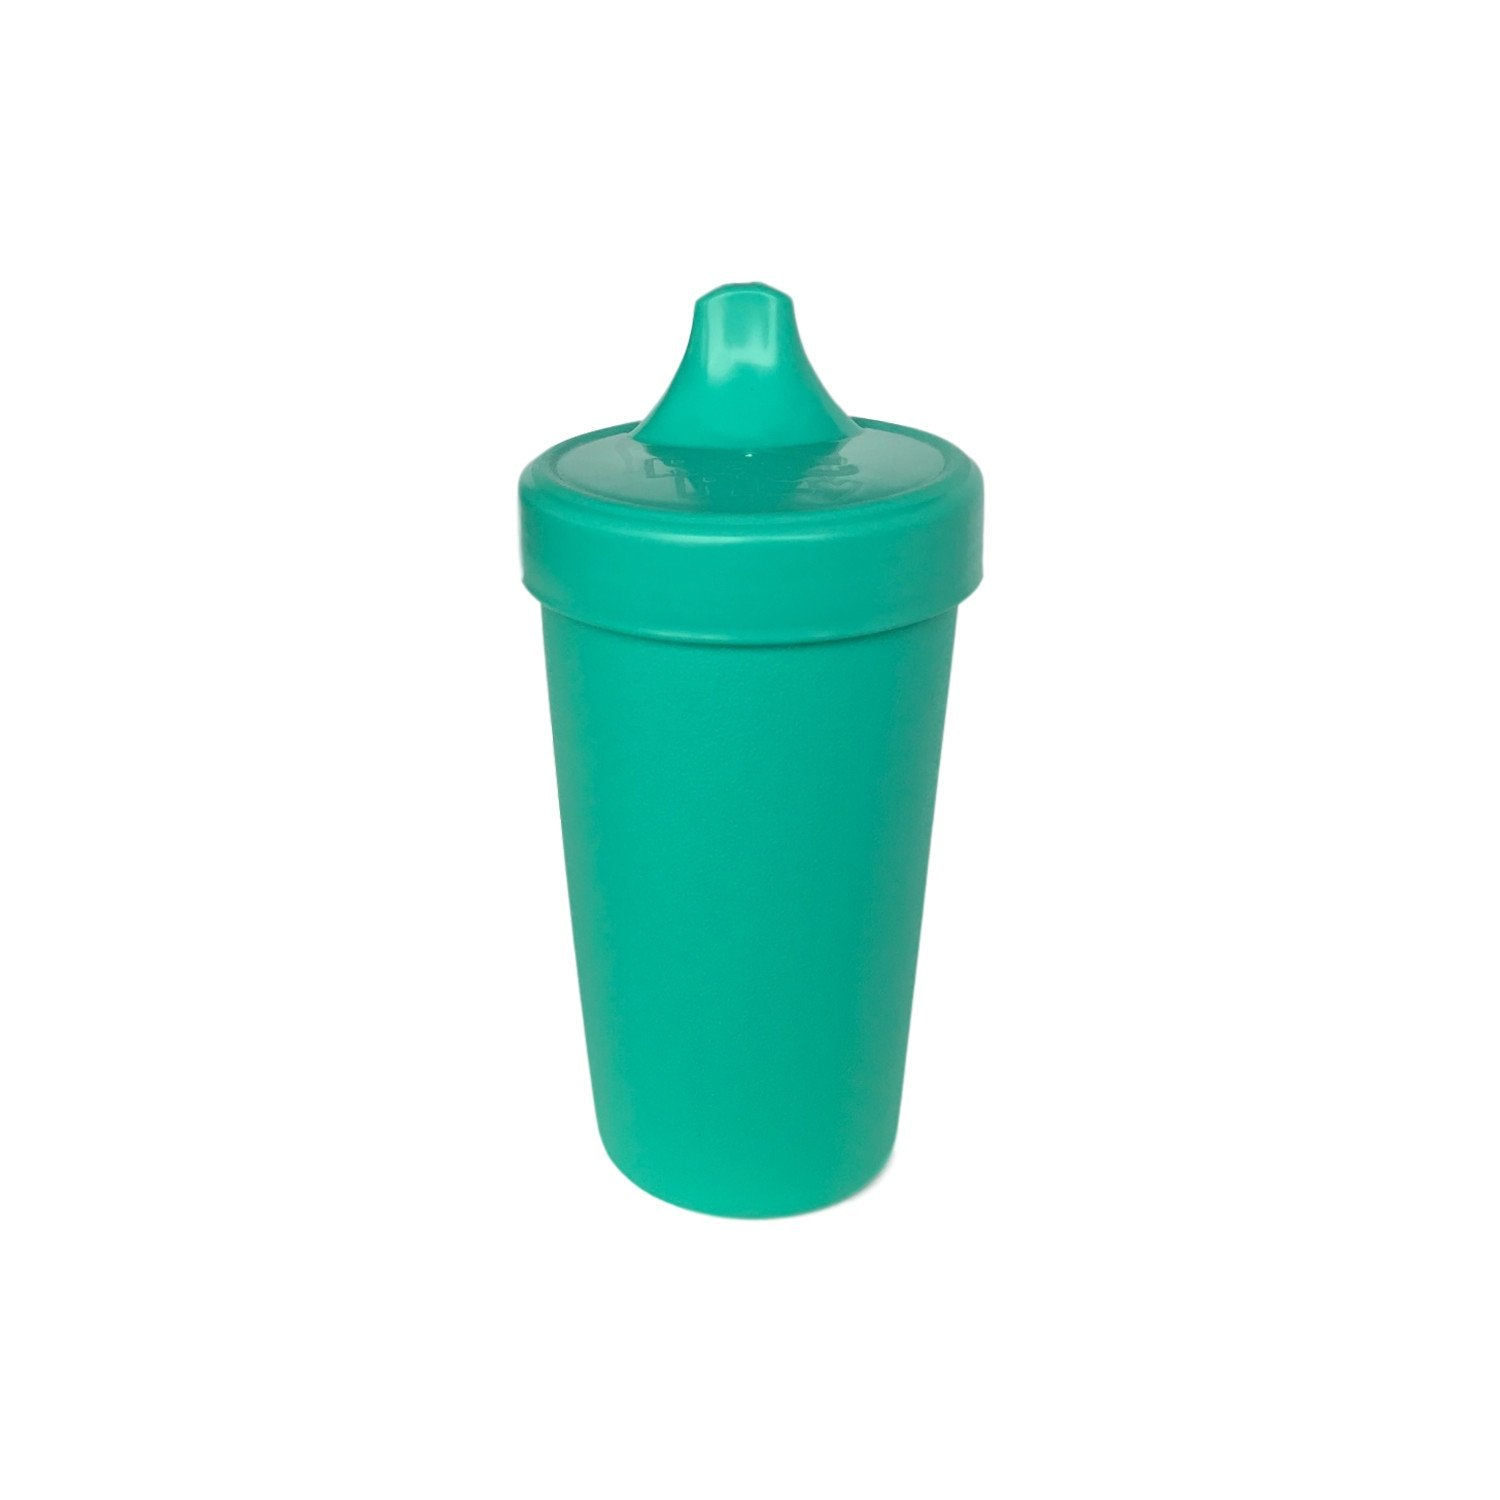 Replay Sippy Cup Replay Sippy Cups Aqua at Little Earth Nest Eco Shop